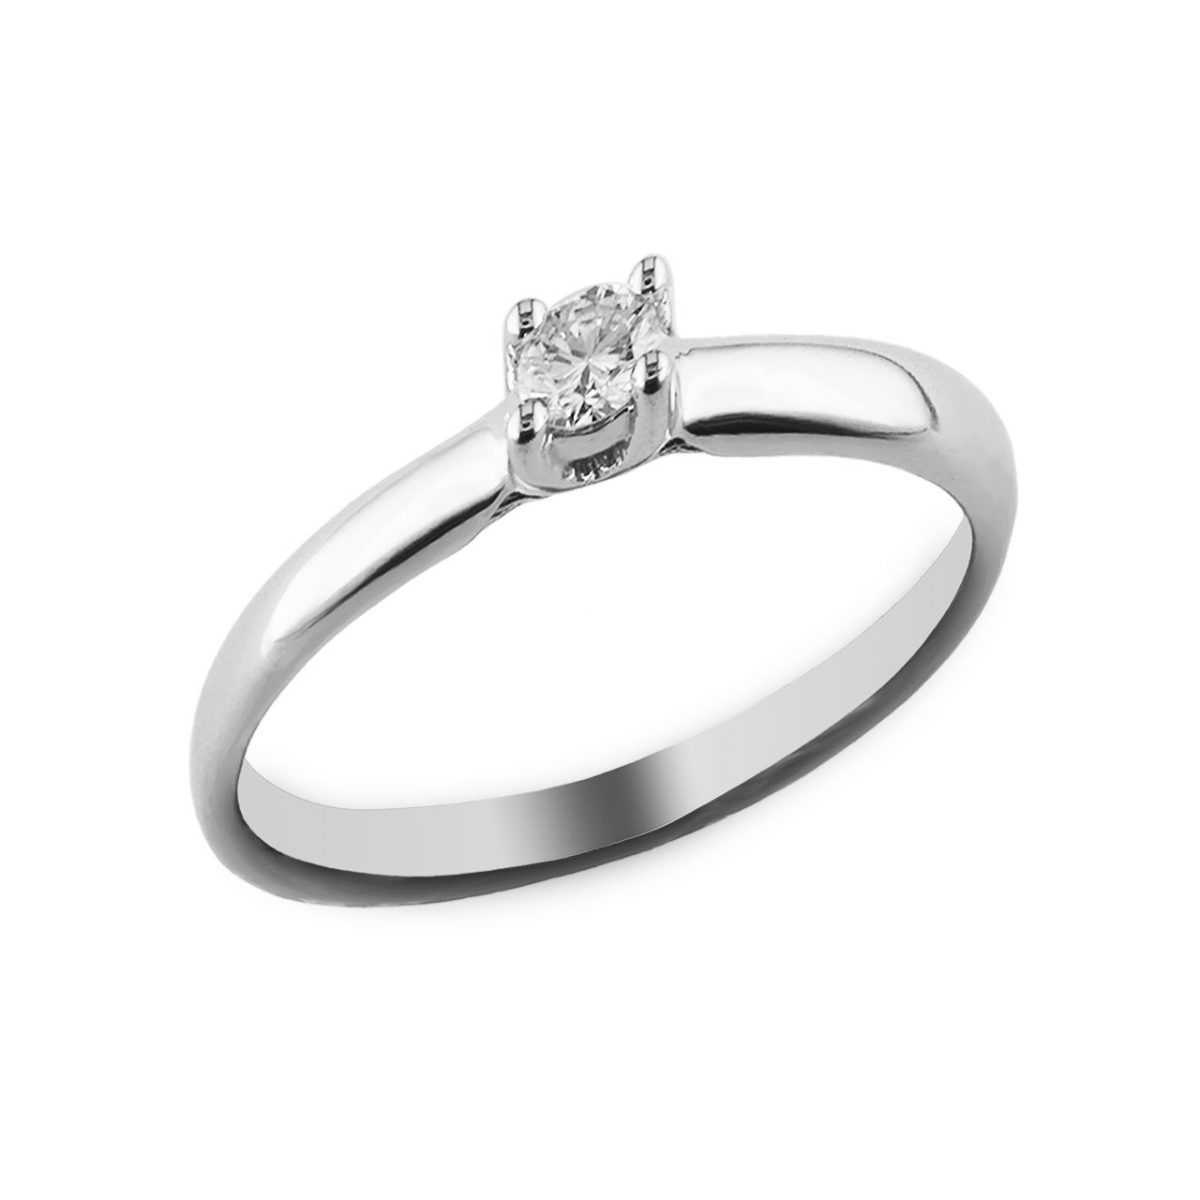 carat round diamond solitaire promise ring in 10k. Black Bedroom Furniture Sets. Home Design Ideas